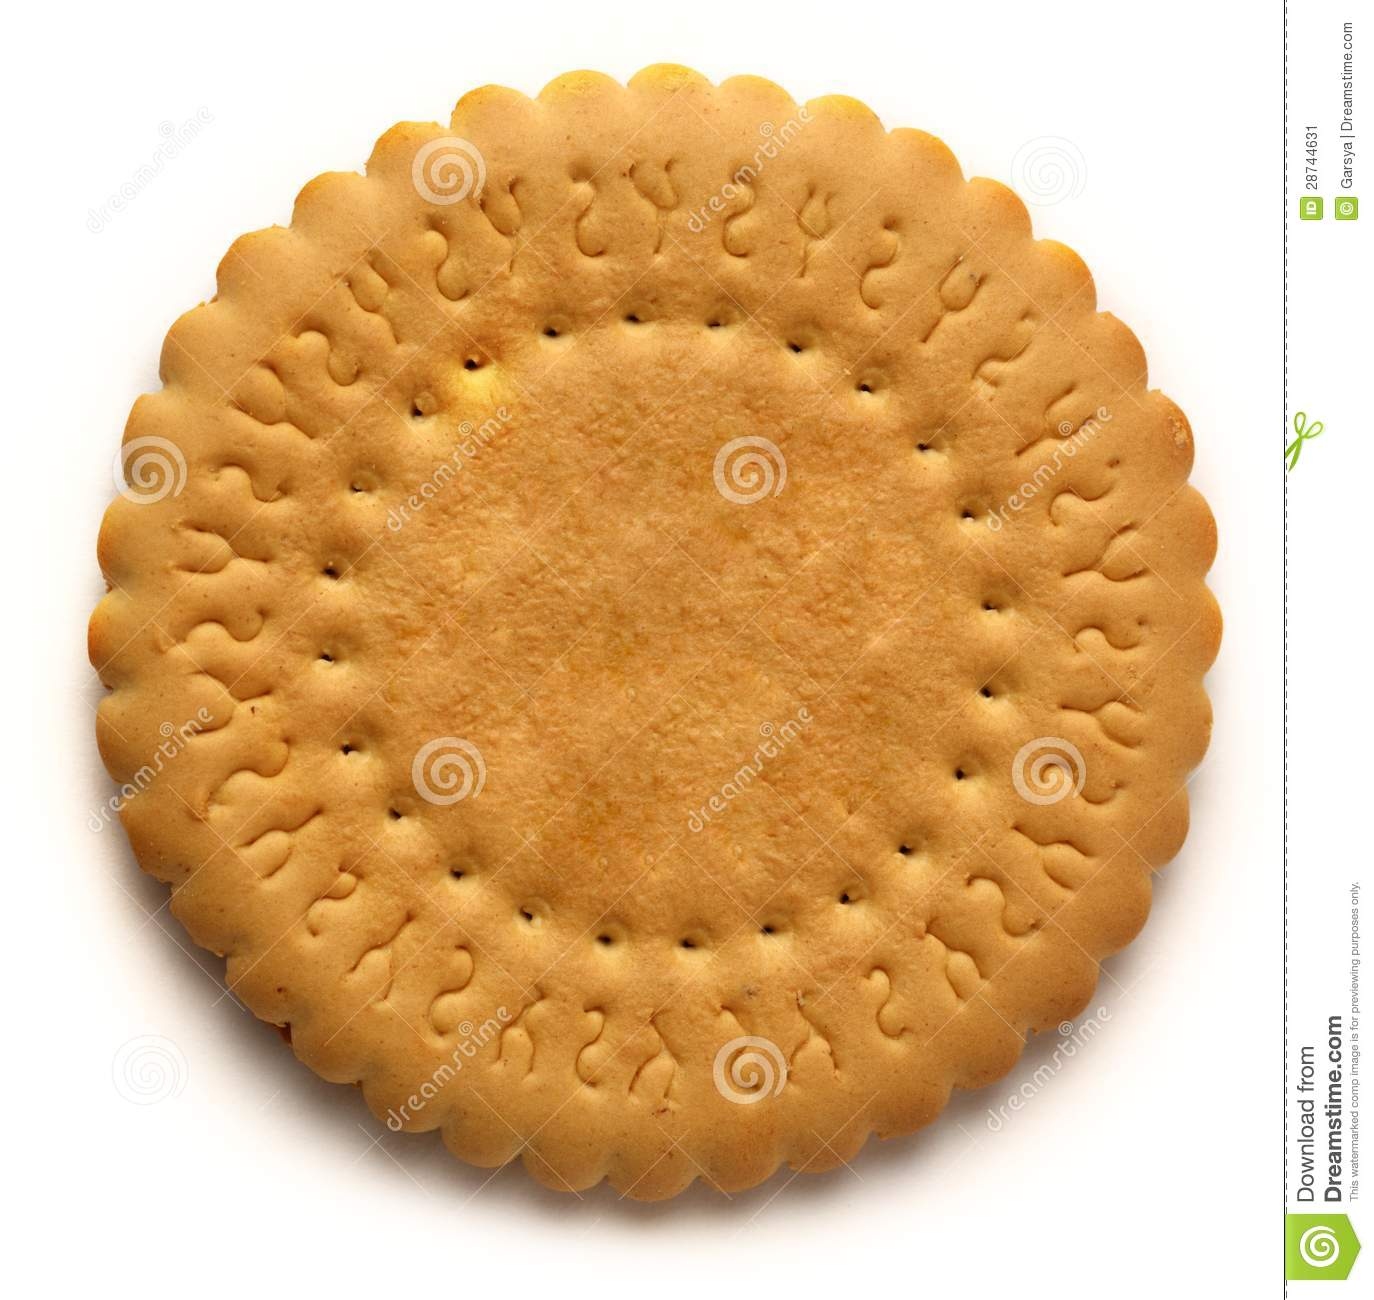 Round Biscuit Stock Image - Image: 28744631